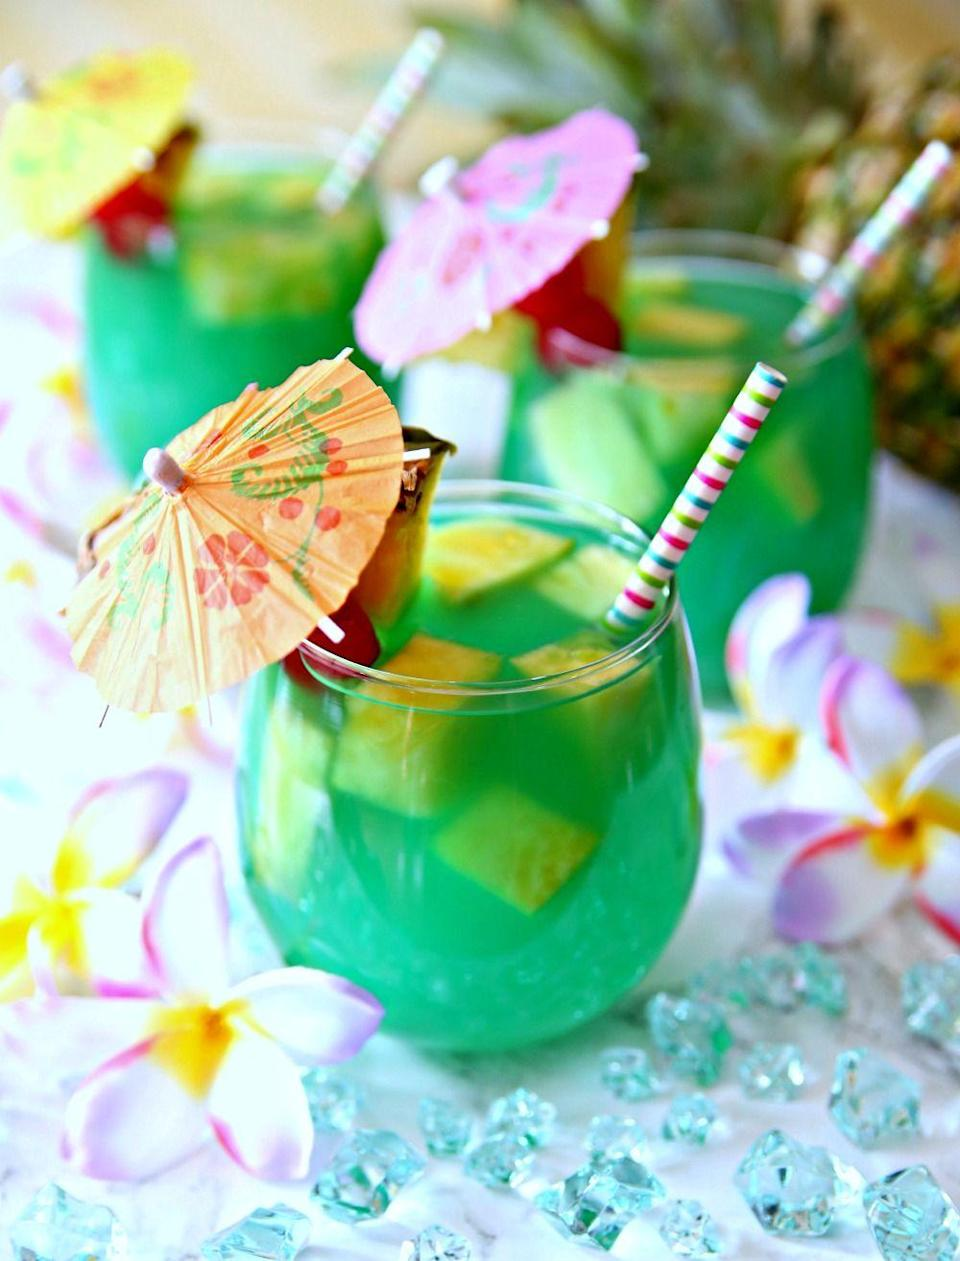 """<p>Mermaid water is a coconut- and pineapple- infused drink that gets its cool blue color from a splash of Blue Curaçao. Like any great tropical drink, it's best enjoyed with a <a href=""""https://www.amazon.com/KingSeal-Umbrella-Parasol-Cocktail-Cupcake/dp/B013KPL6LS/"""" rel=""""nofollow noopener"""" target=""""_blank"""" data-ylk=""""slk:tiki umbrella"""" class=""""link rapid-noclick-resp"""">tiki umbrella</a>. </p><p>Get the recipe at <a href=""""https://www.happygoluckyblog.com/mermaid-water-rum-punch/"""" rel=""""nofollow noopener"""" target=""""_blank"""" data-ylk=""""slk:Happy Go Lucky Blog"""" class=""""link rapid-noclick-resp"""">Happy Go Lucky Blog</a>. </p>"""